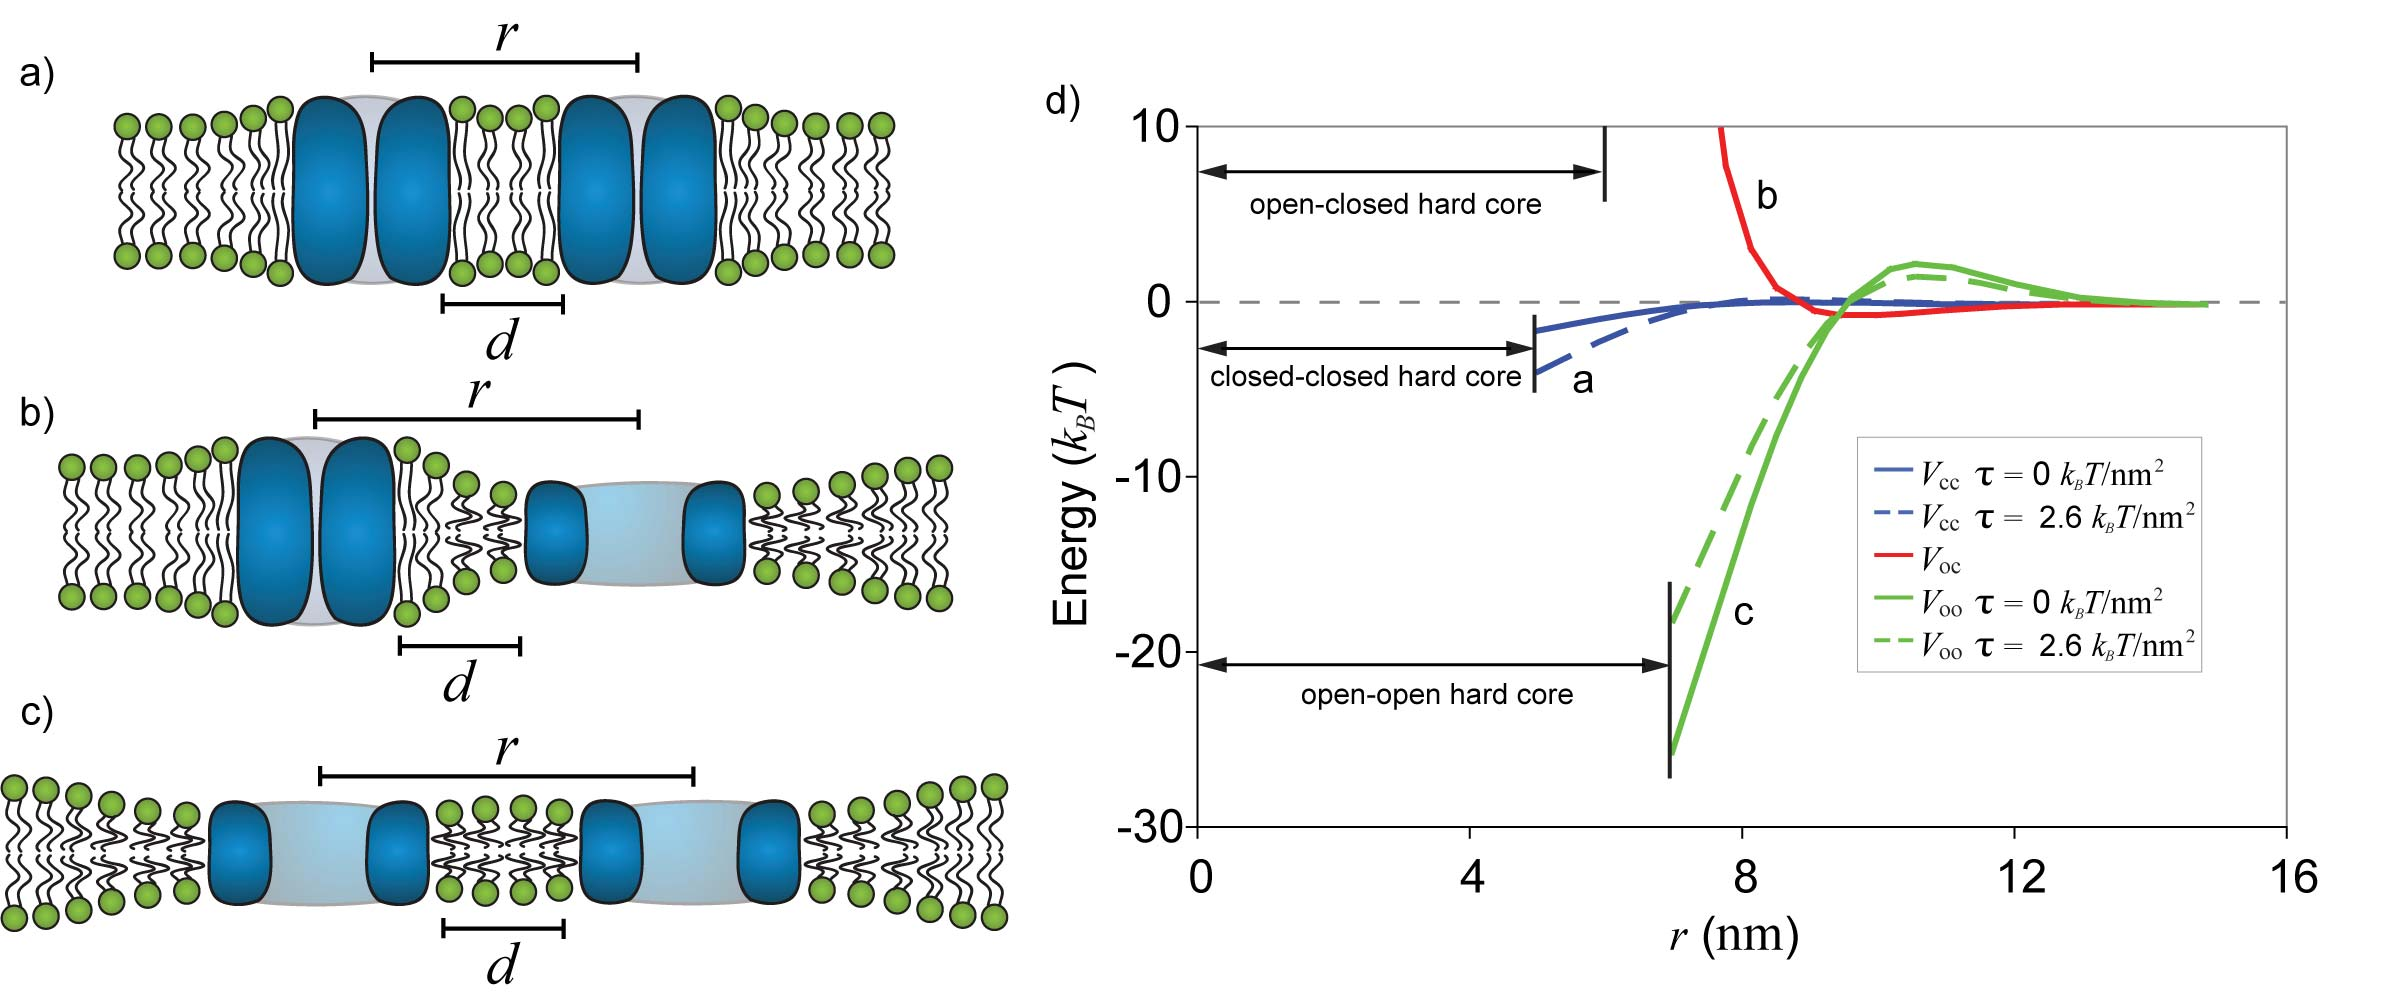 Elastic Interactions of Neighboring Proteins